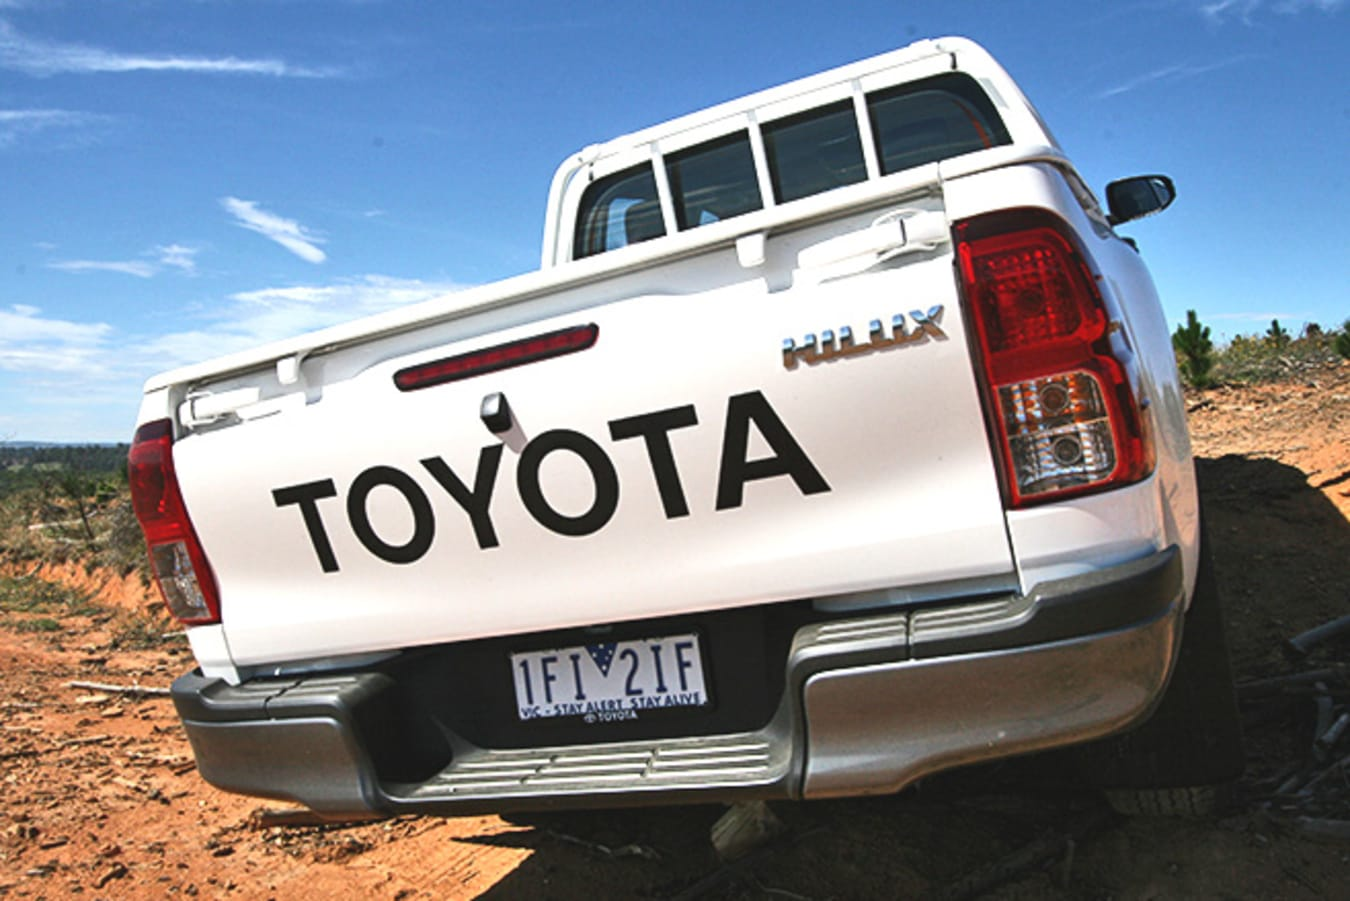 Toyota HiLux 4x4 Workmate rear